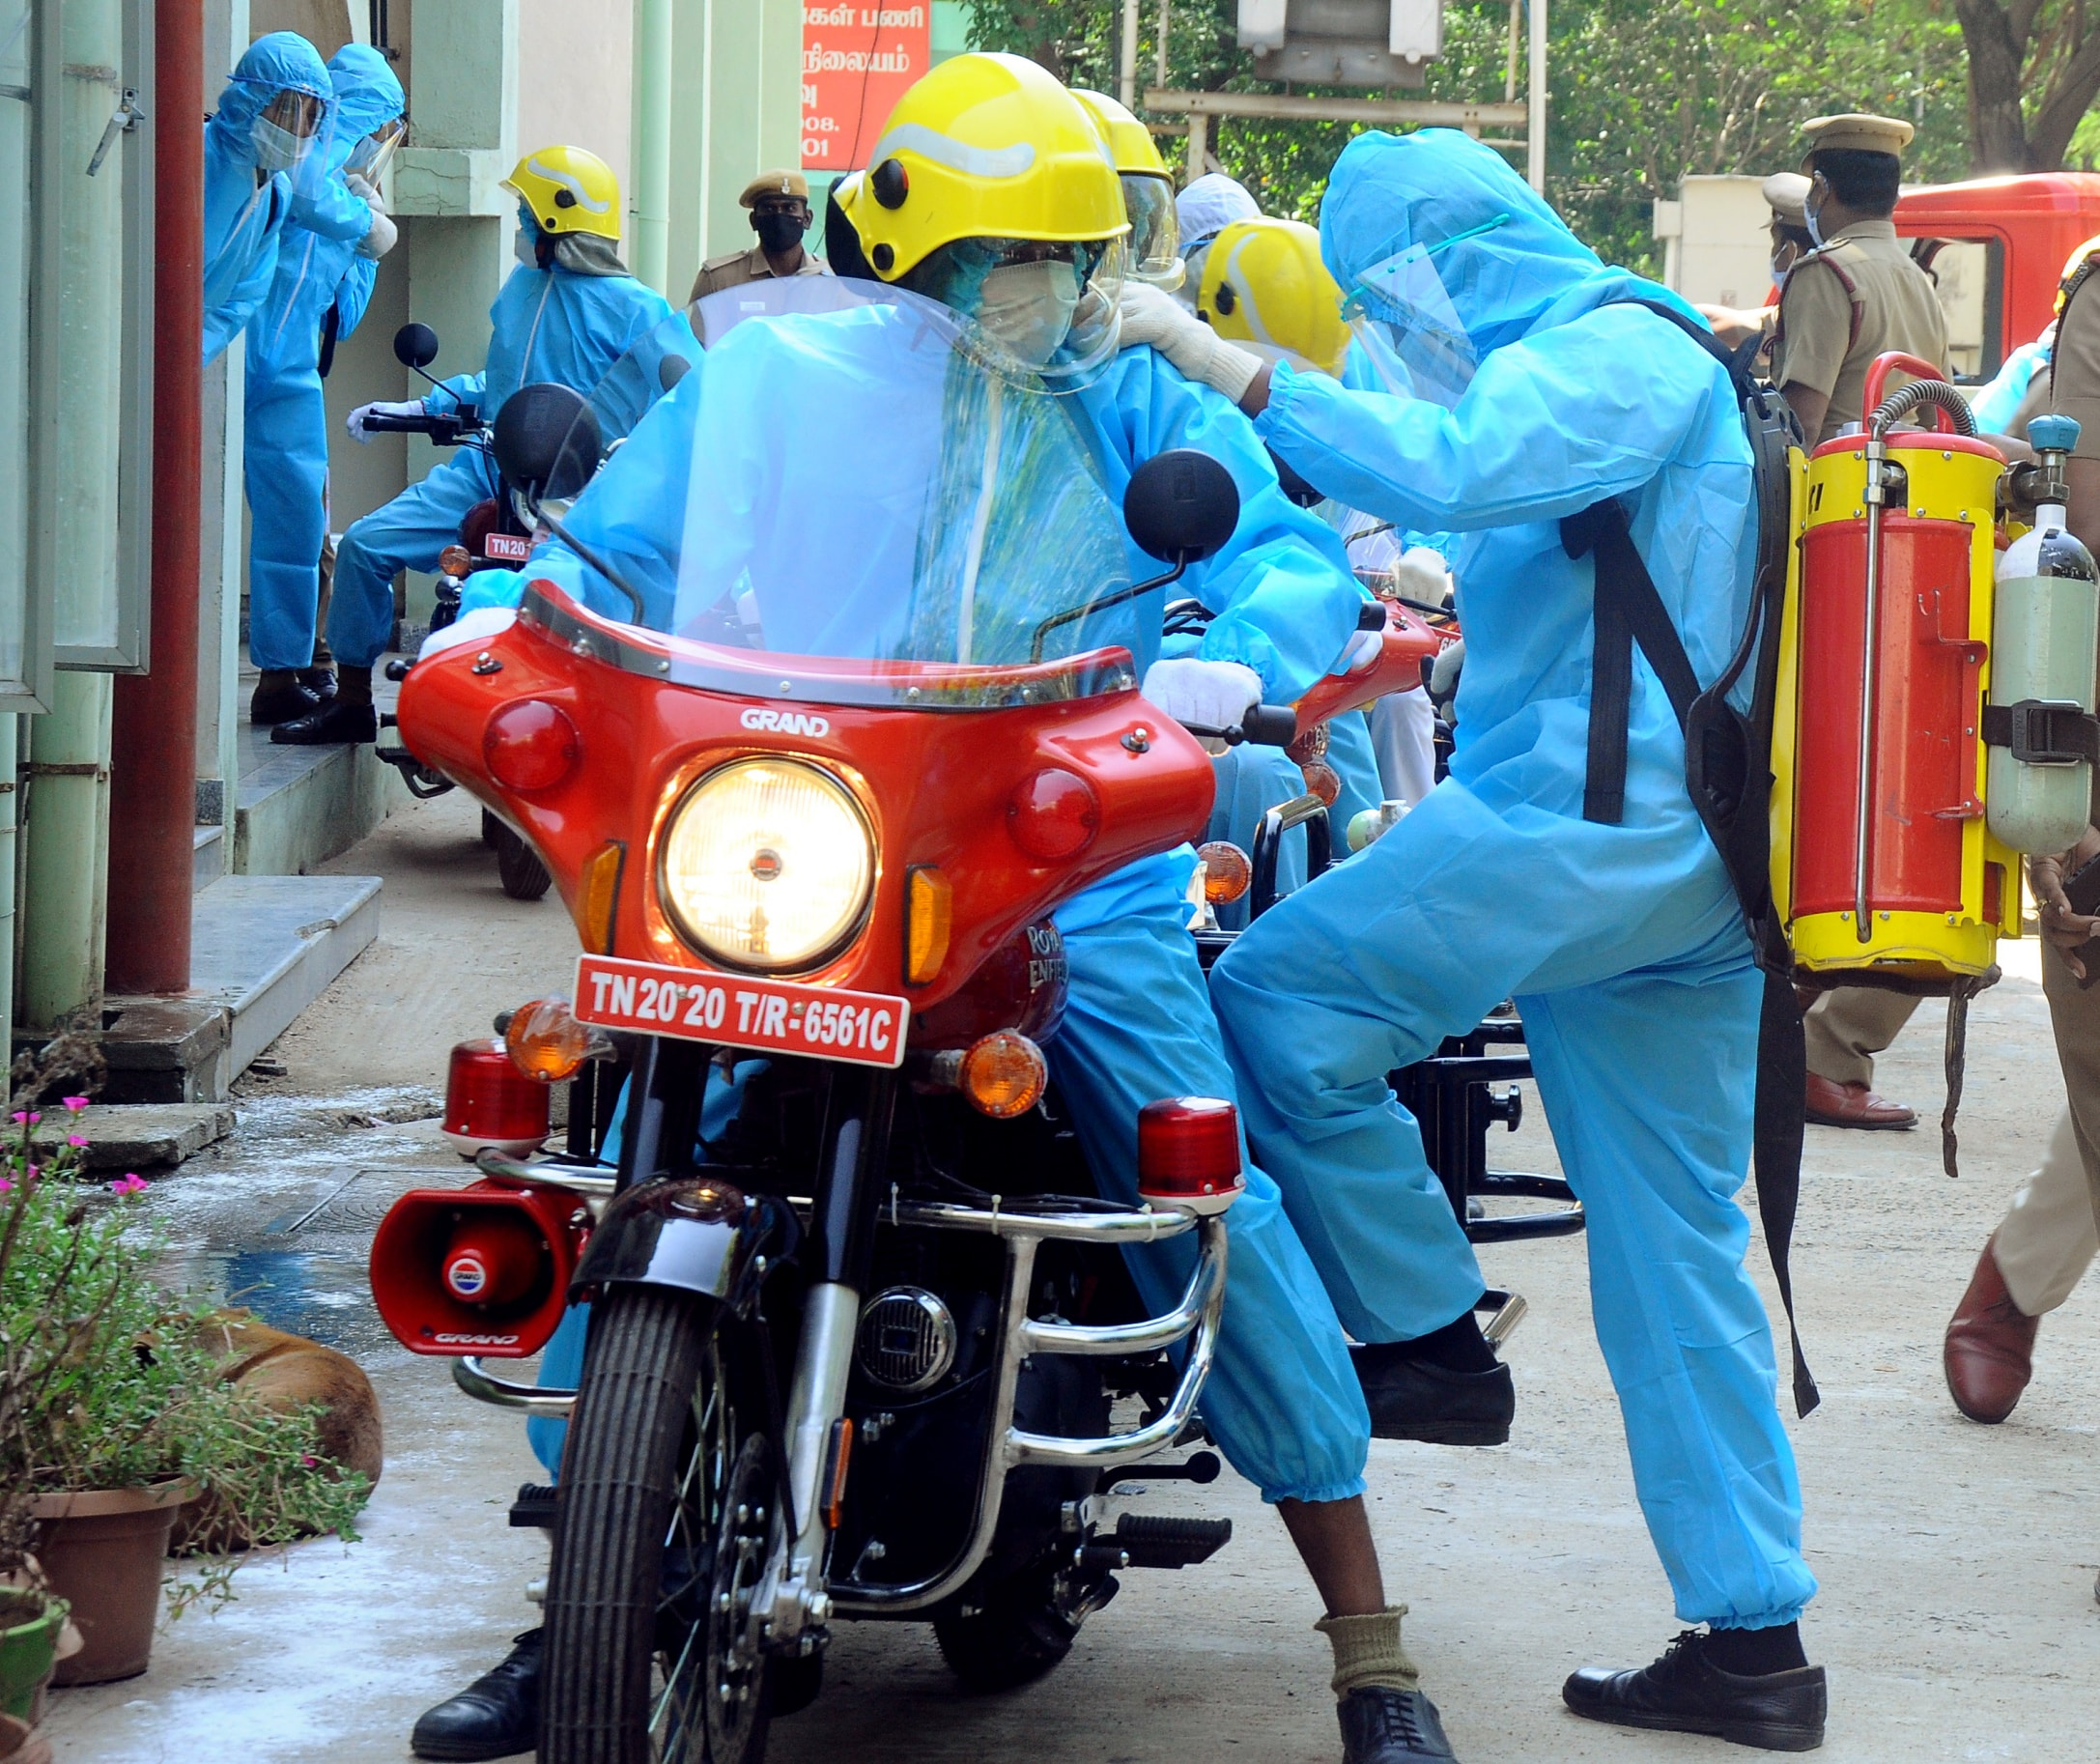 Firefighters wearing PPE kits ride bikes as around 60 of them who were on duty during Covid-19 pandemic return to station after successfully recovering in Chennai